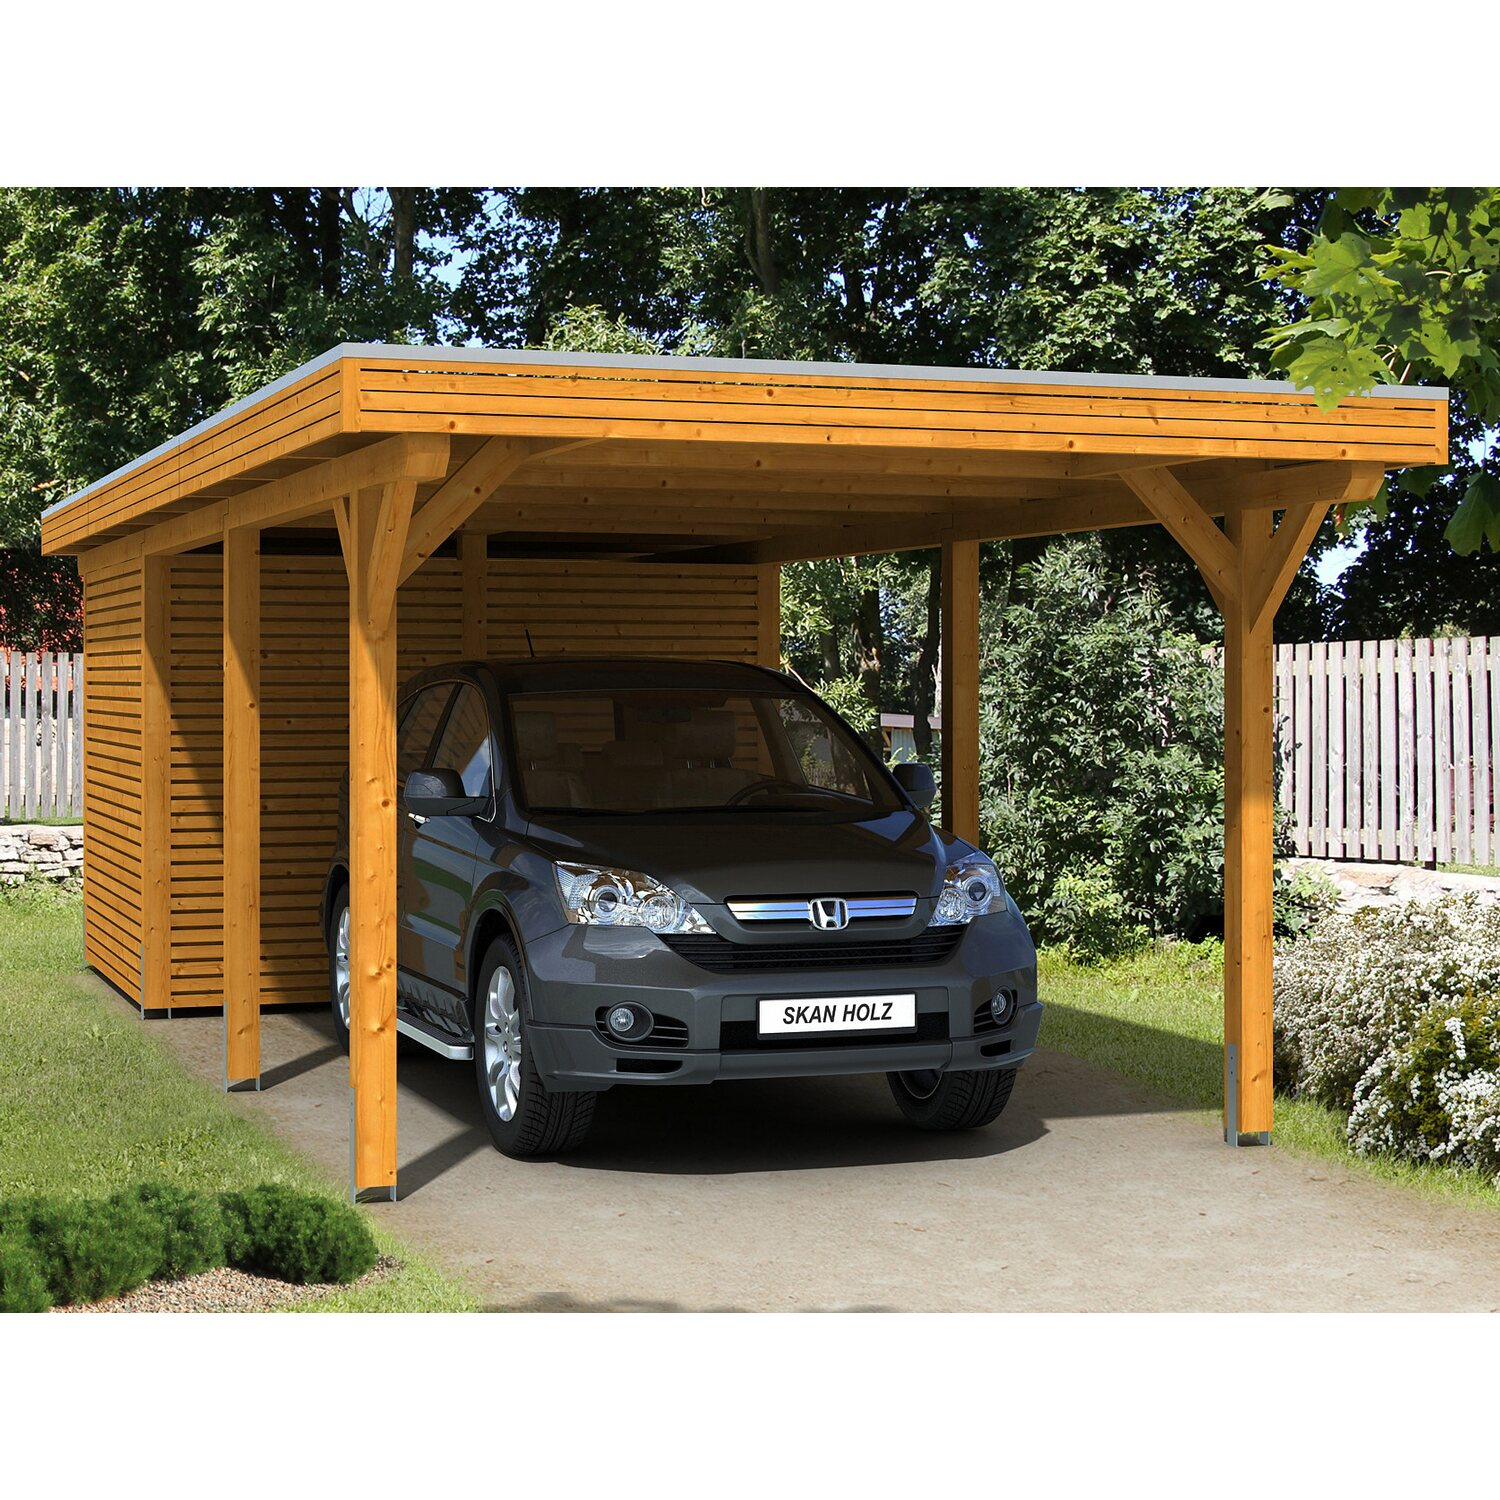 skan holz carport spessart 355 cm x 846 cm mit abstellraum eiche hell kaufen bei obi. Black Bedroom Furniture Sets. Home Design Ideas